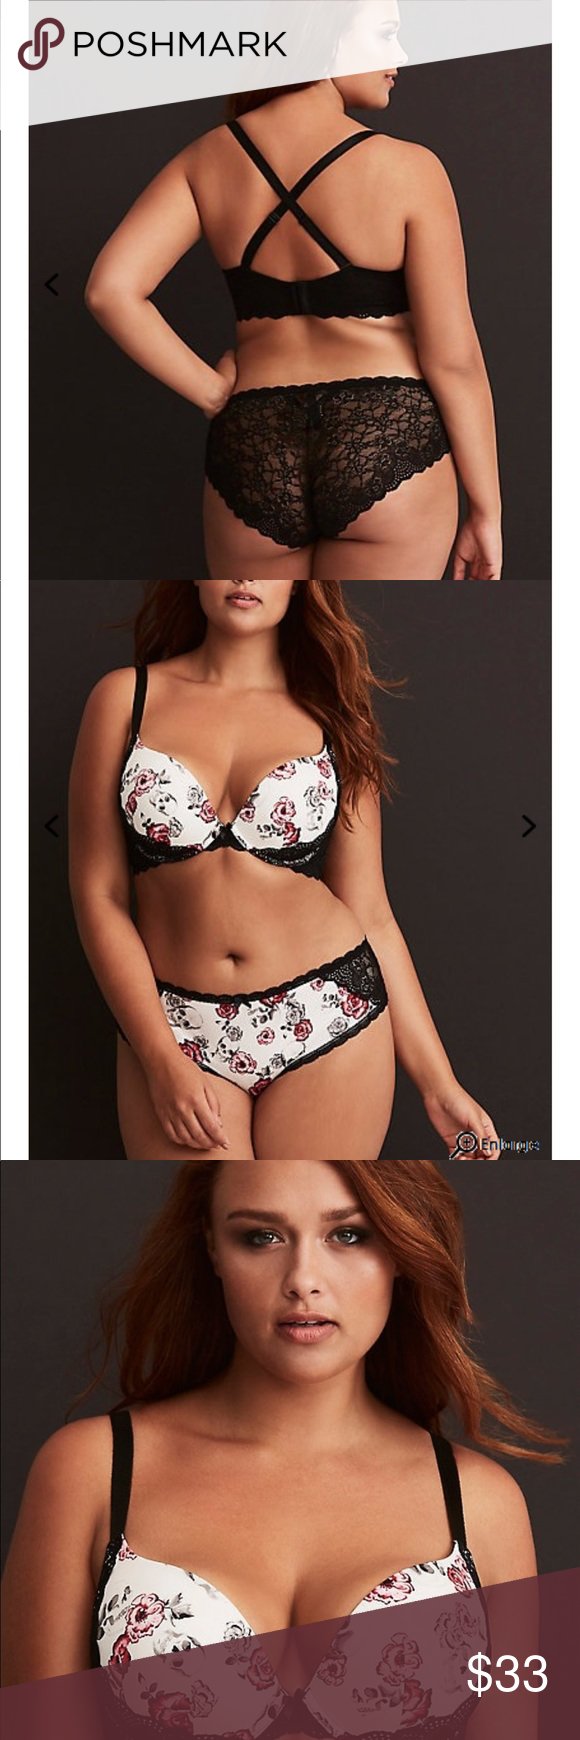 9f21ba239f Torrid Floral Skull Print Push-Up Plunge Bra This Push-up Bra simply has to  be worn with a sheer top  the print is amazing. The white microfiber cups  have ...